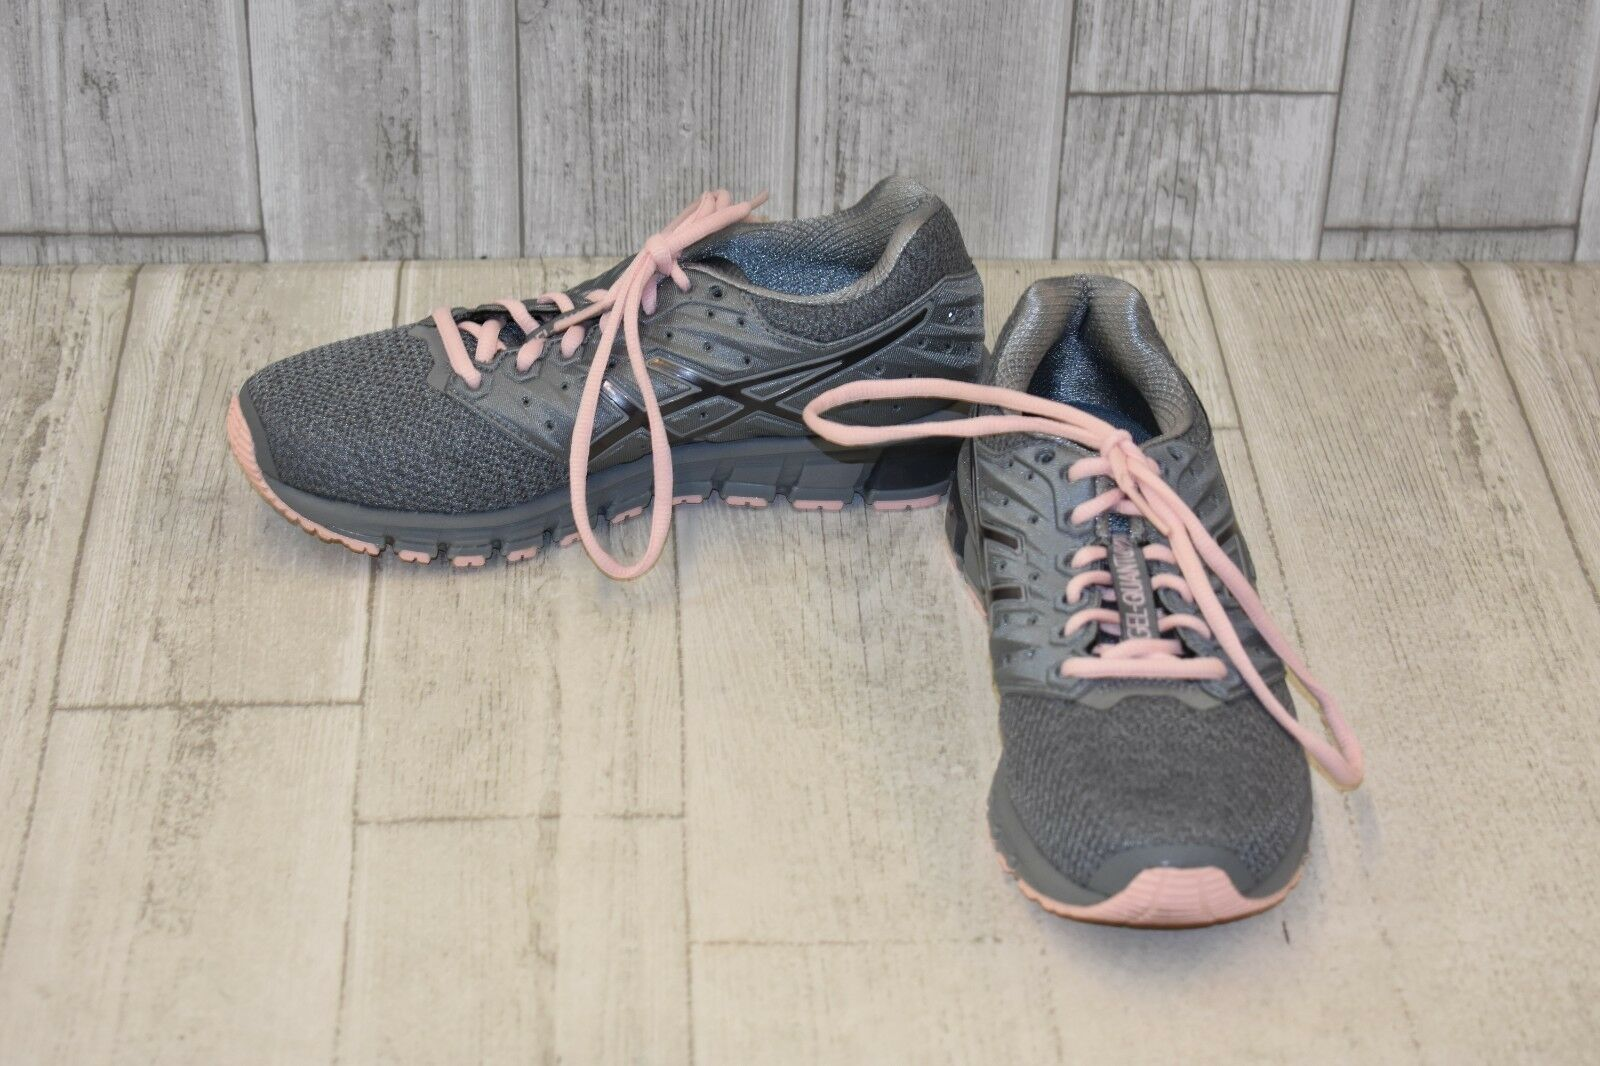 Asics Gel-Quantum 180 2 MX Running shoes - Women's Size 8 - Grey Pink